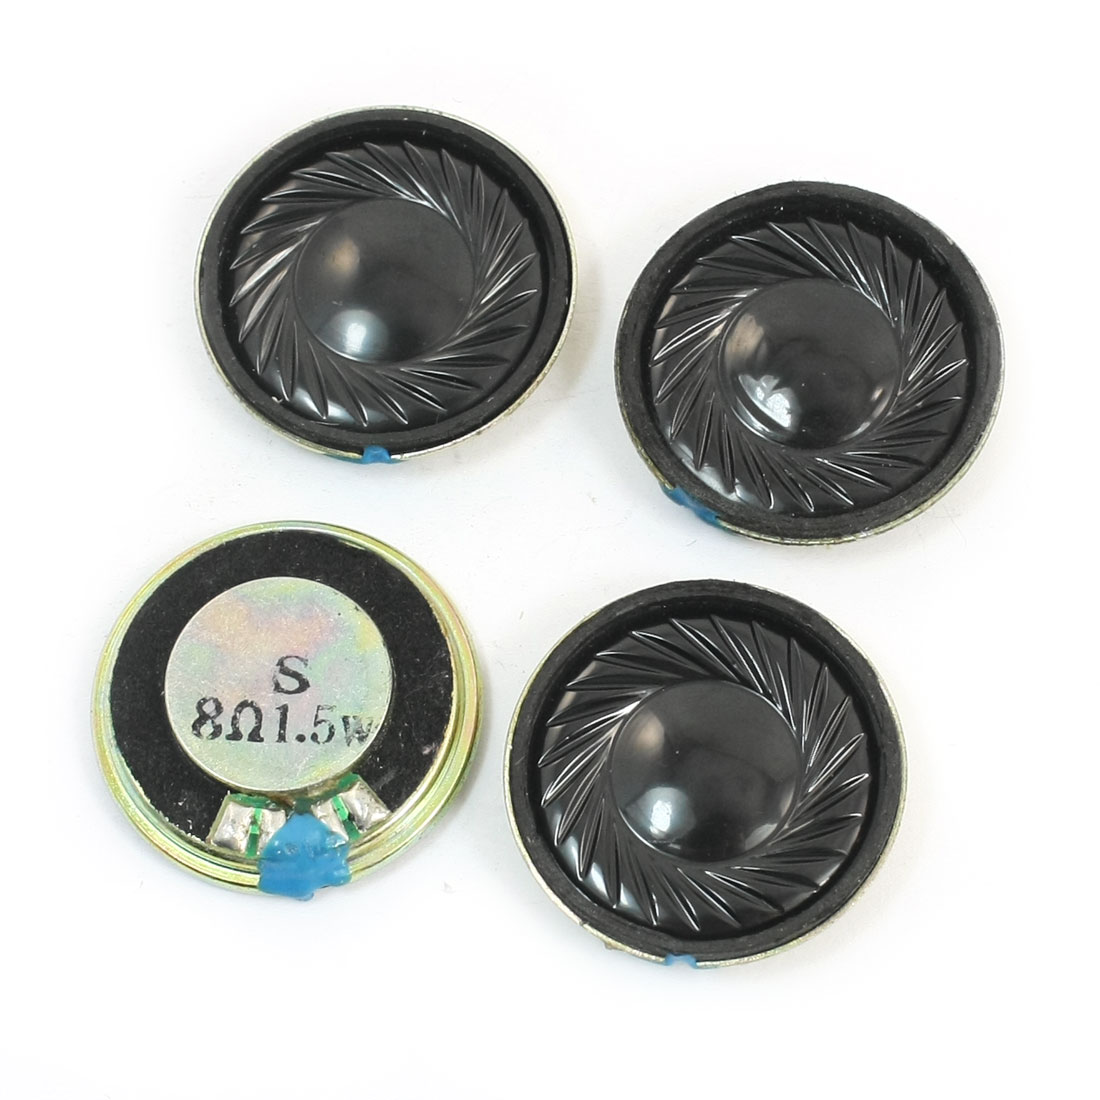 LCD Ad Player Parts 28mm Dia Round Metal Magnetic Type Speaker Loudspeaker 1.5W 8 Ohm 4 Pcs